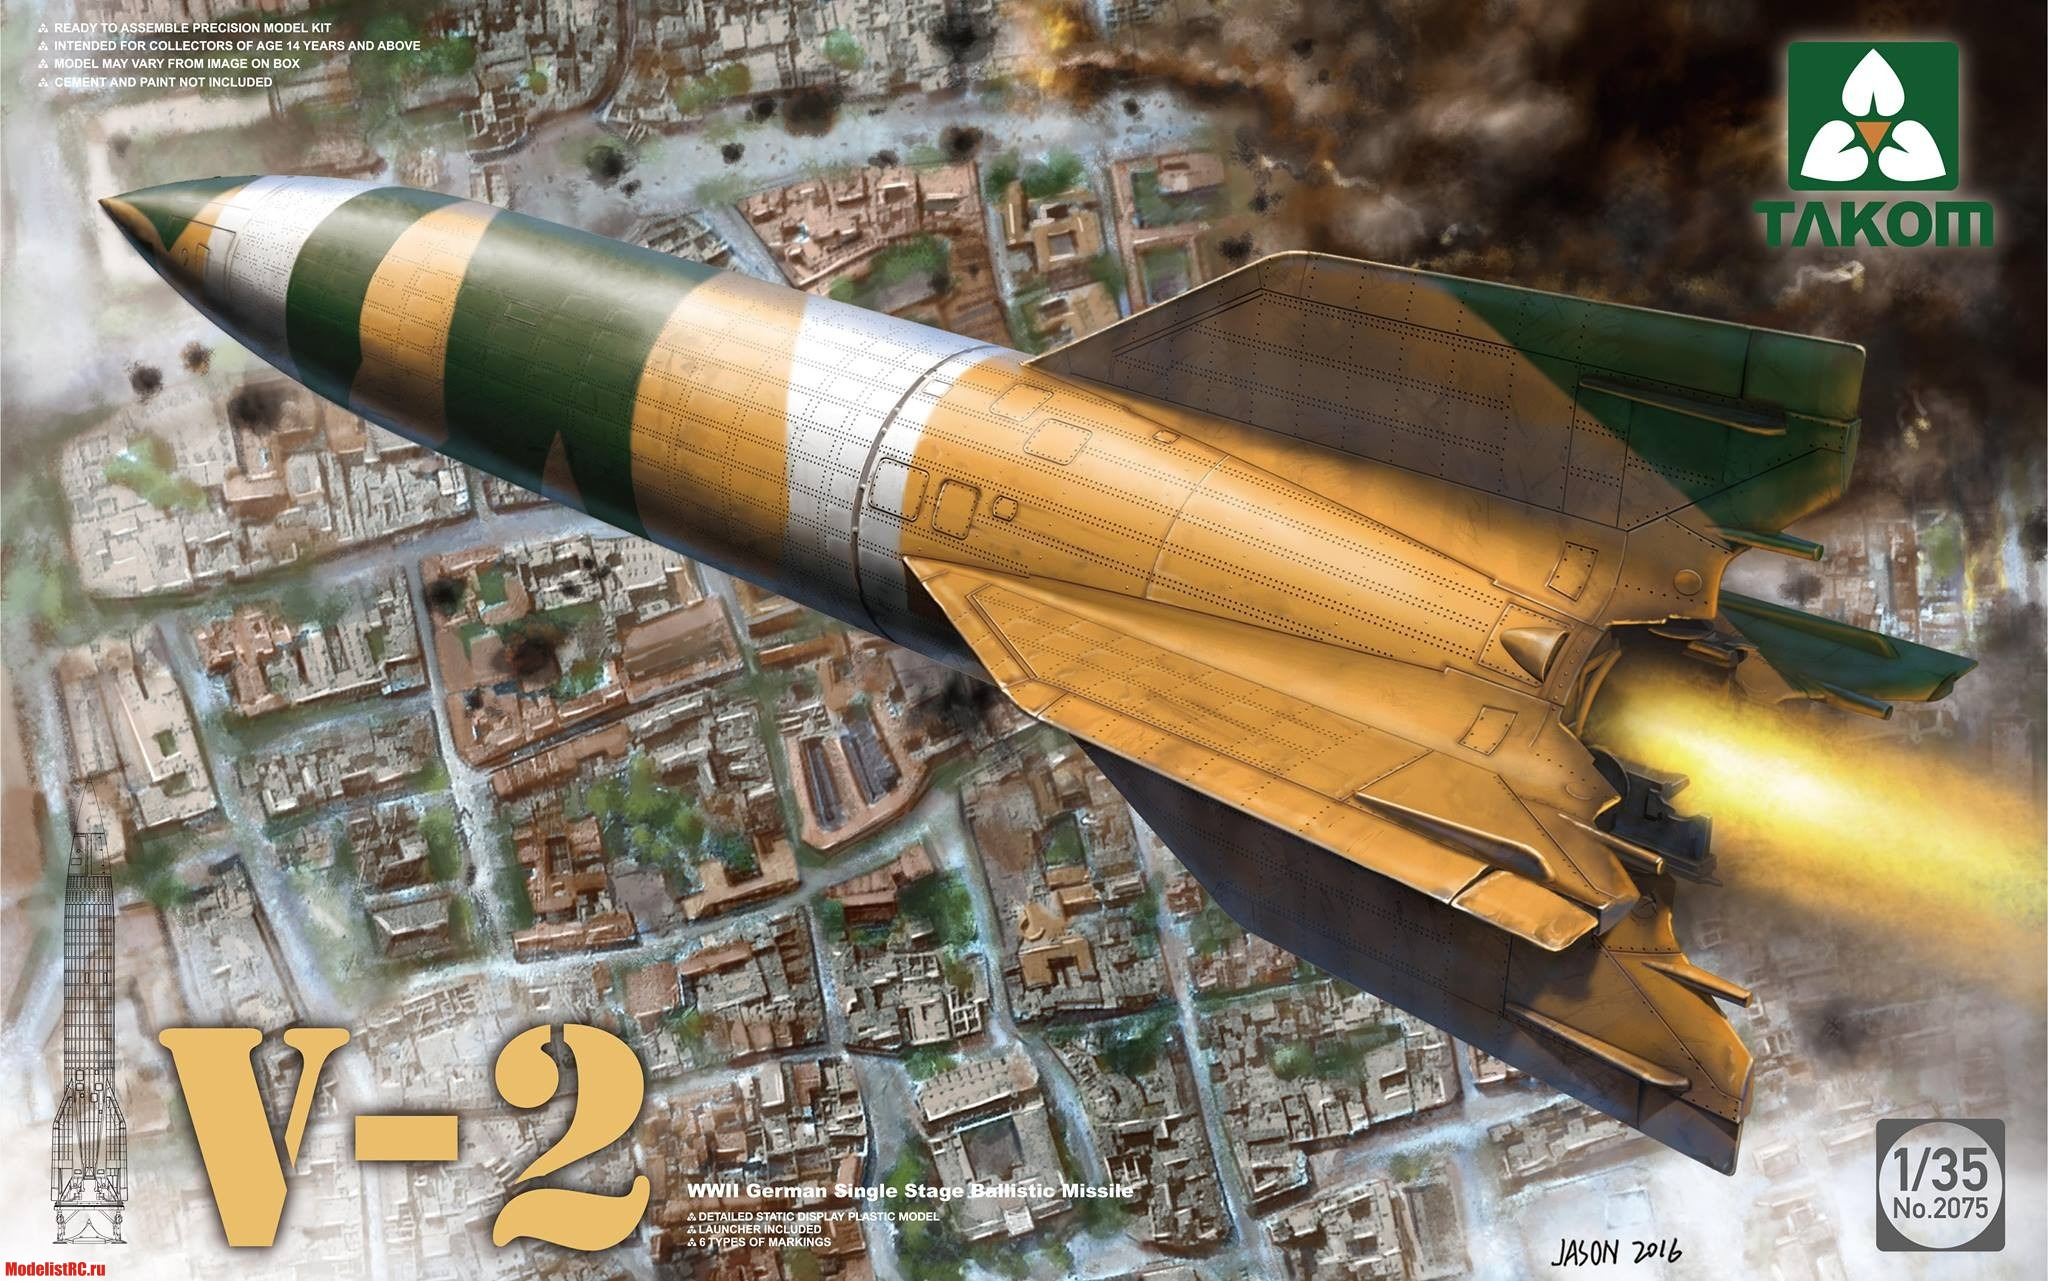 WWII German Single Stage Ballistic Missile V-2 Takom 2075